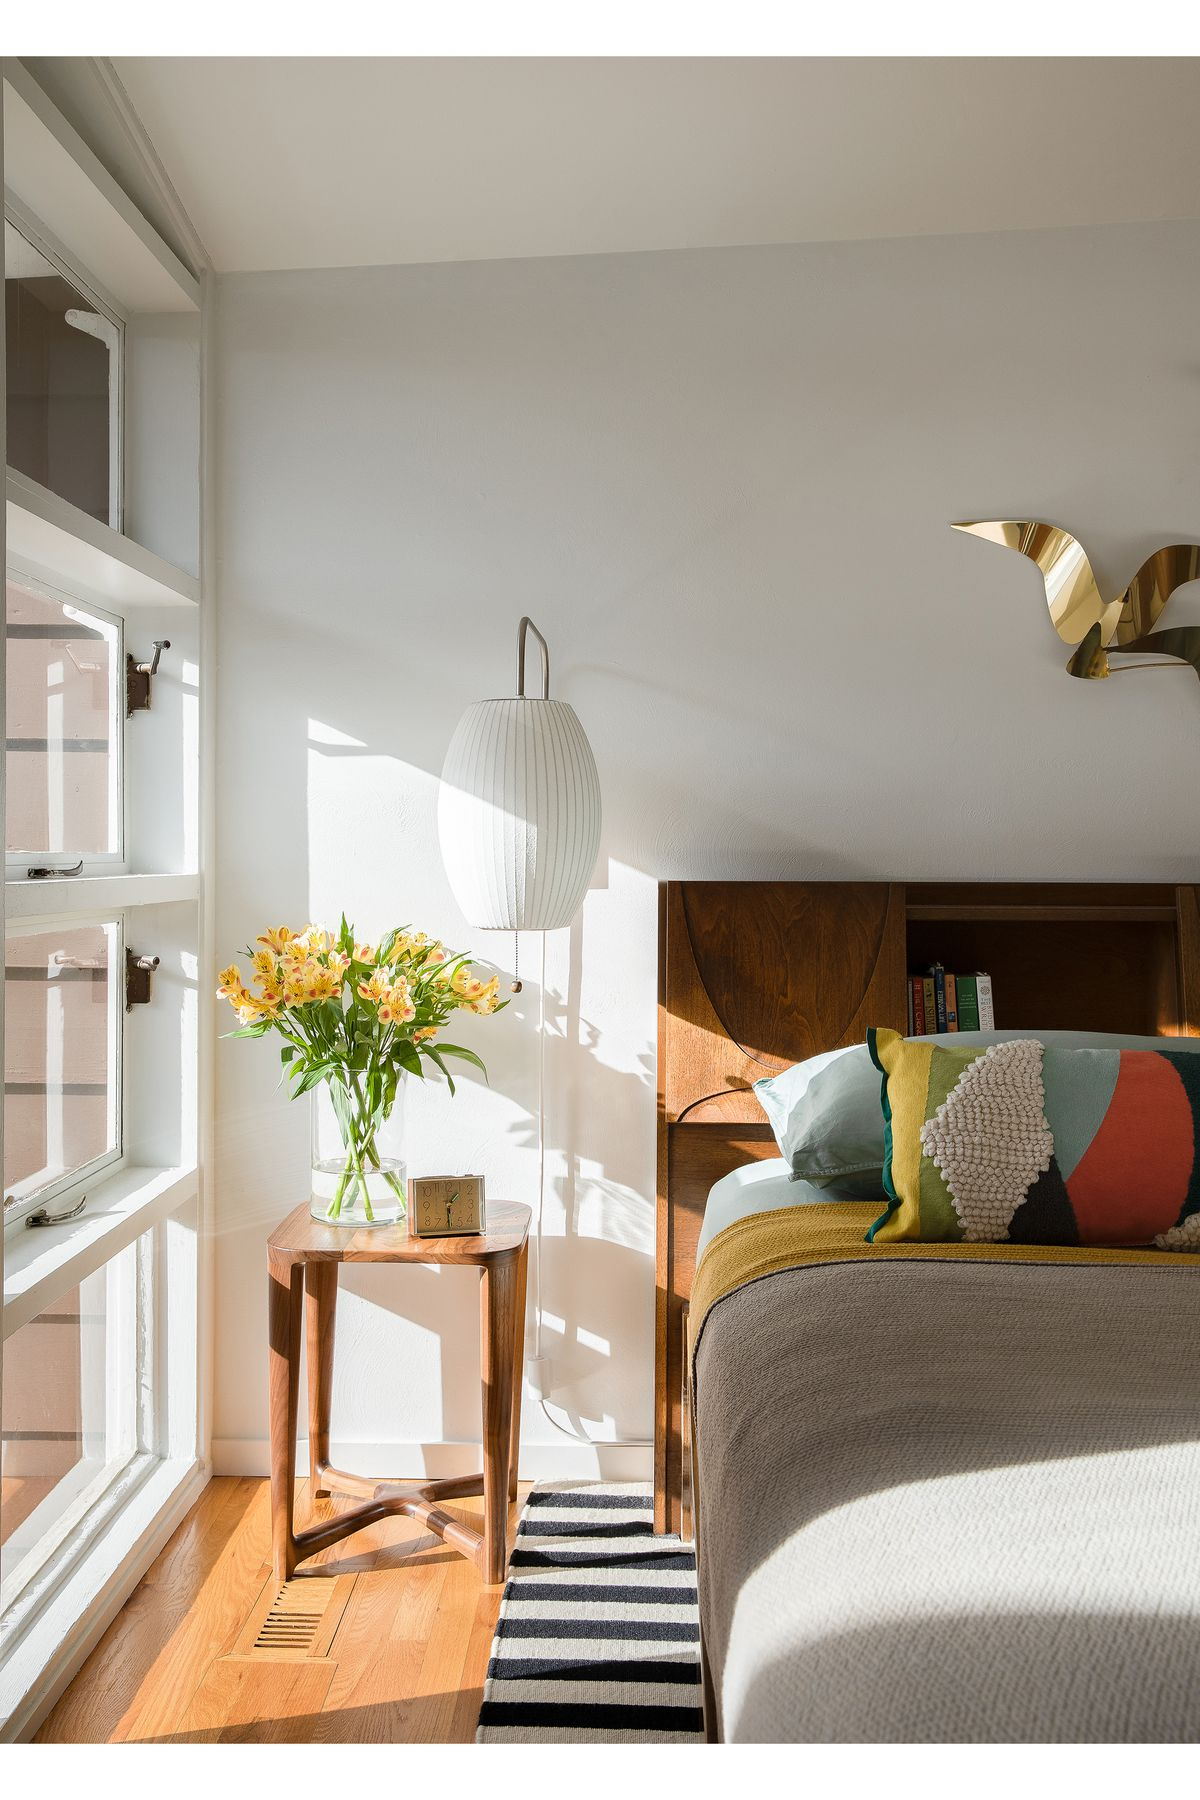 A bedroom. There is a bed with grey bed linens and multiple patterned pillows. Next to the bed is an end table with a vase with yellow flowers. One of the walls is comprised of floor to ceiling windows letting in outside light.